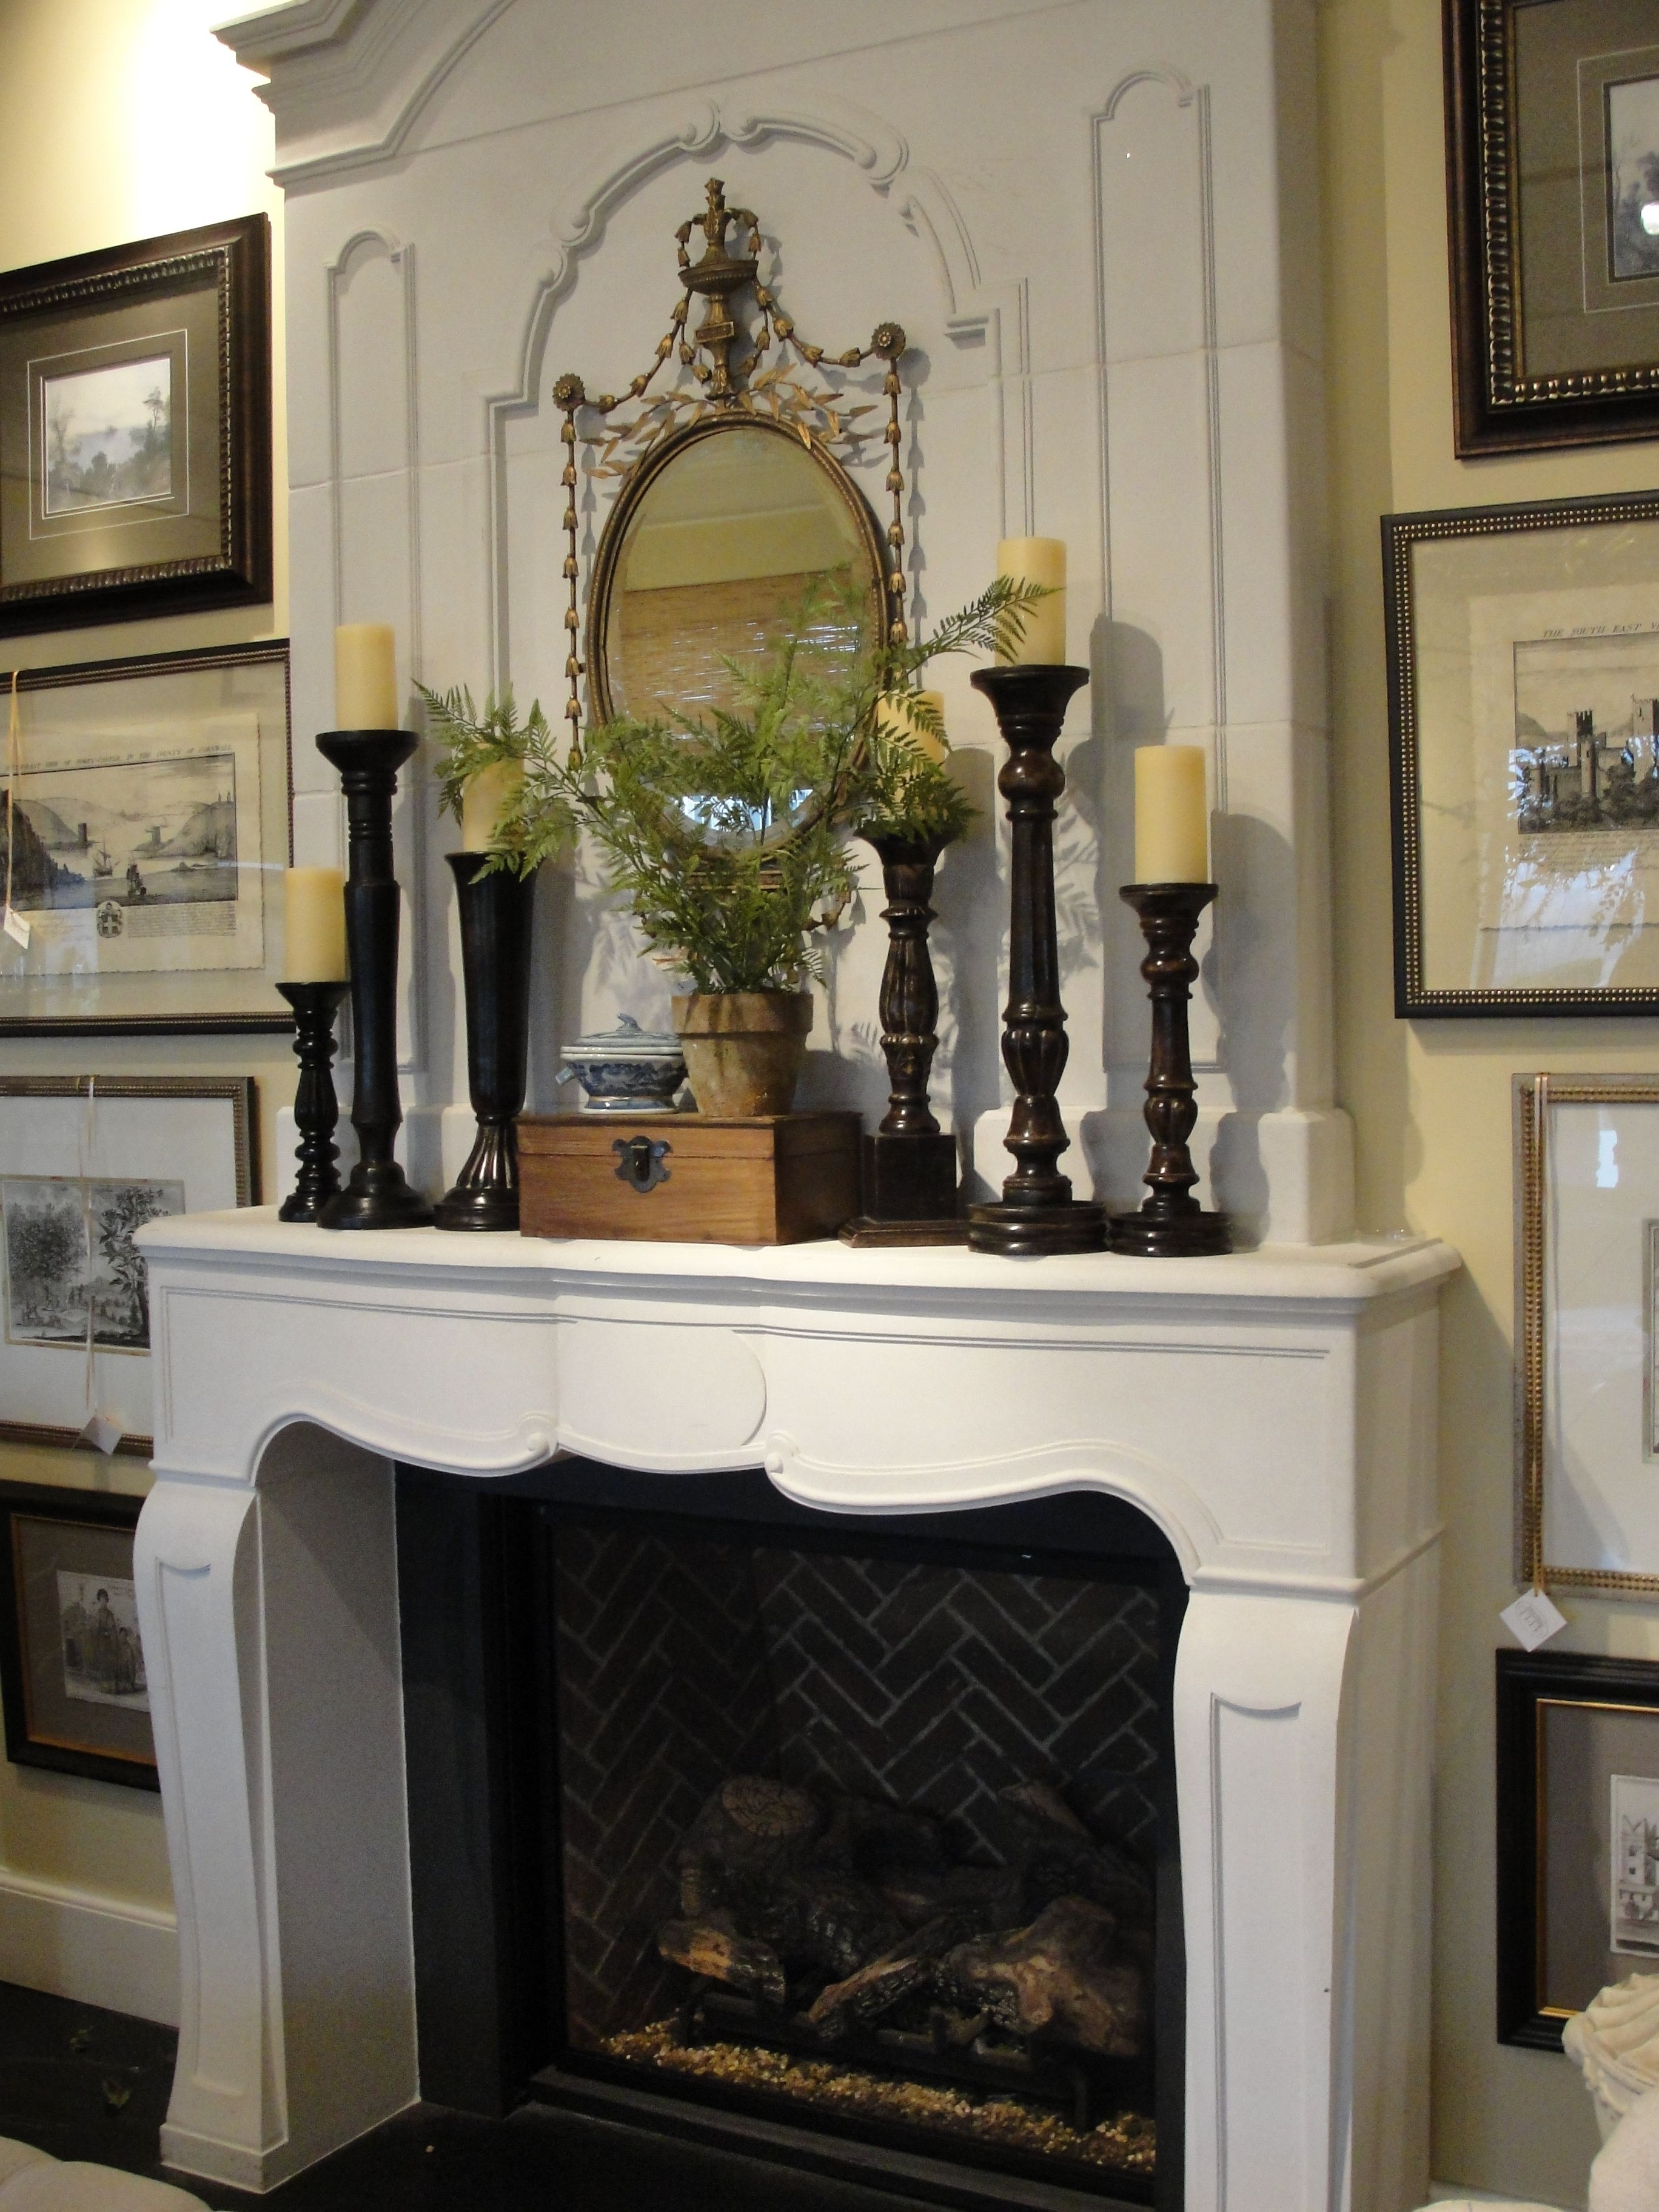 15 Tuscan Fireplace Mantel Decorating Ideas Pictures Fireplace Mantel Decor White Fireplace Mantels Home Fireplace